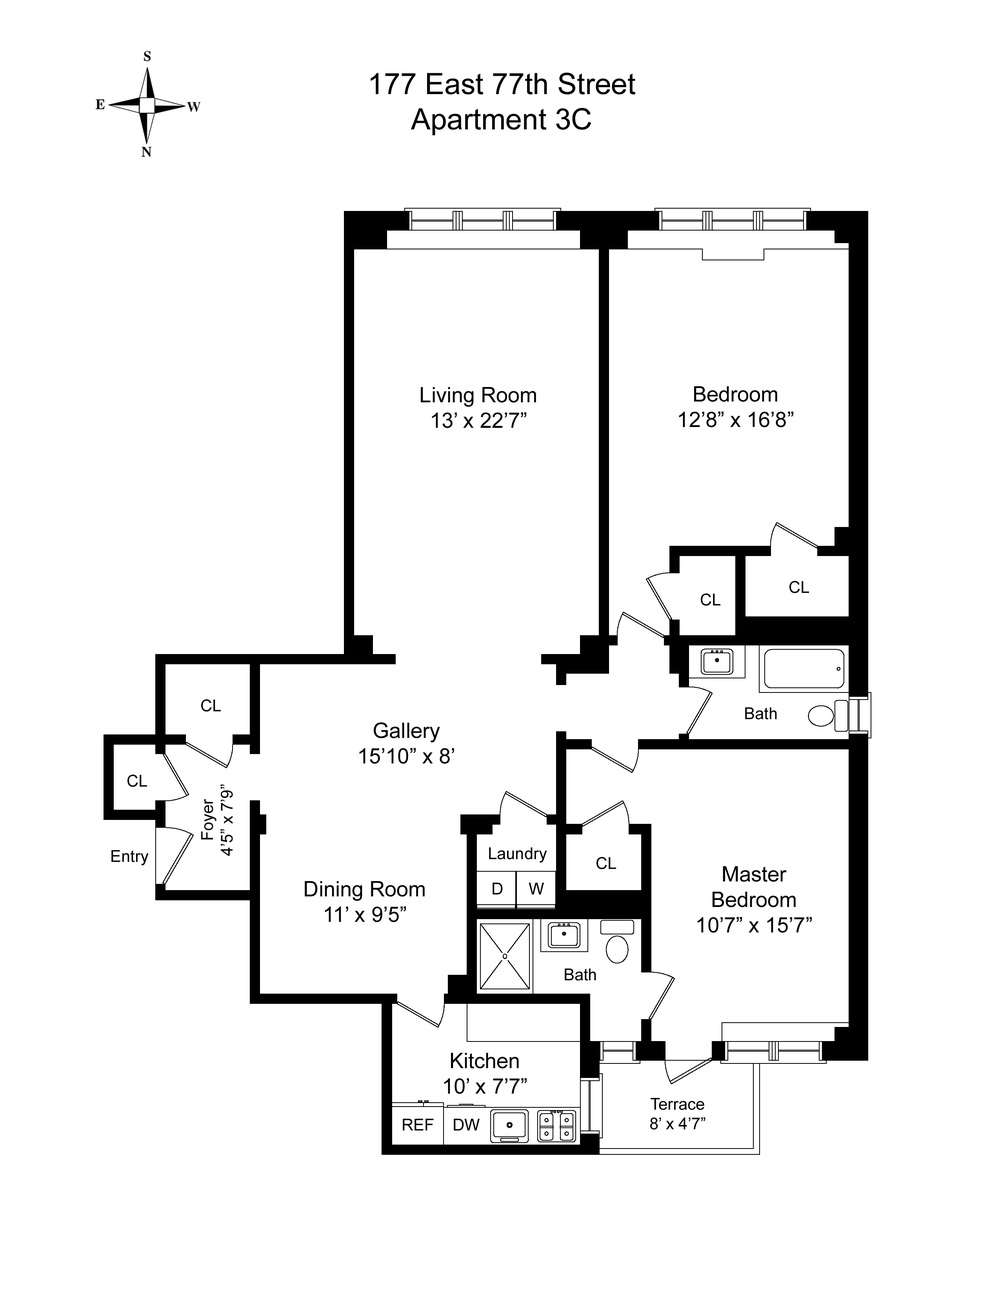 Floor Plan - 177 East 77th Street 3C.jpg